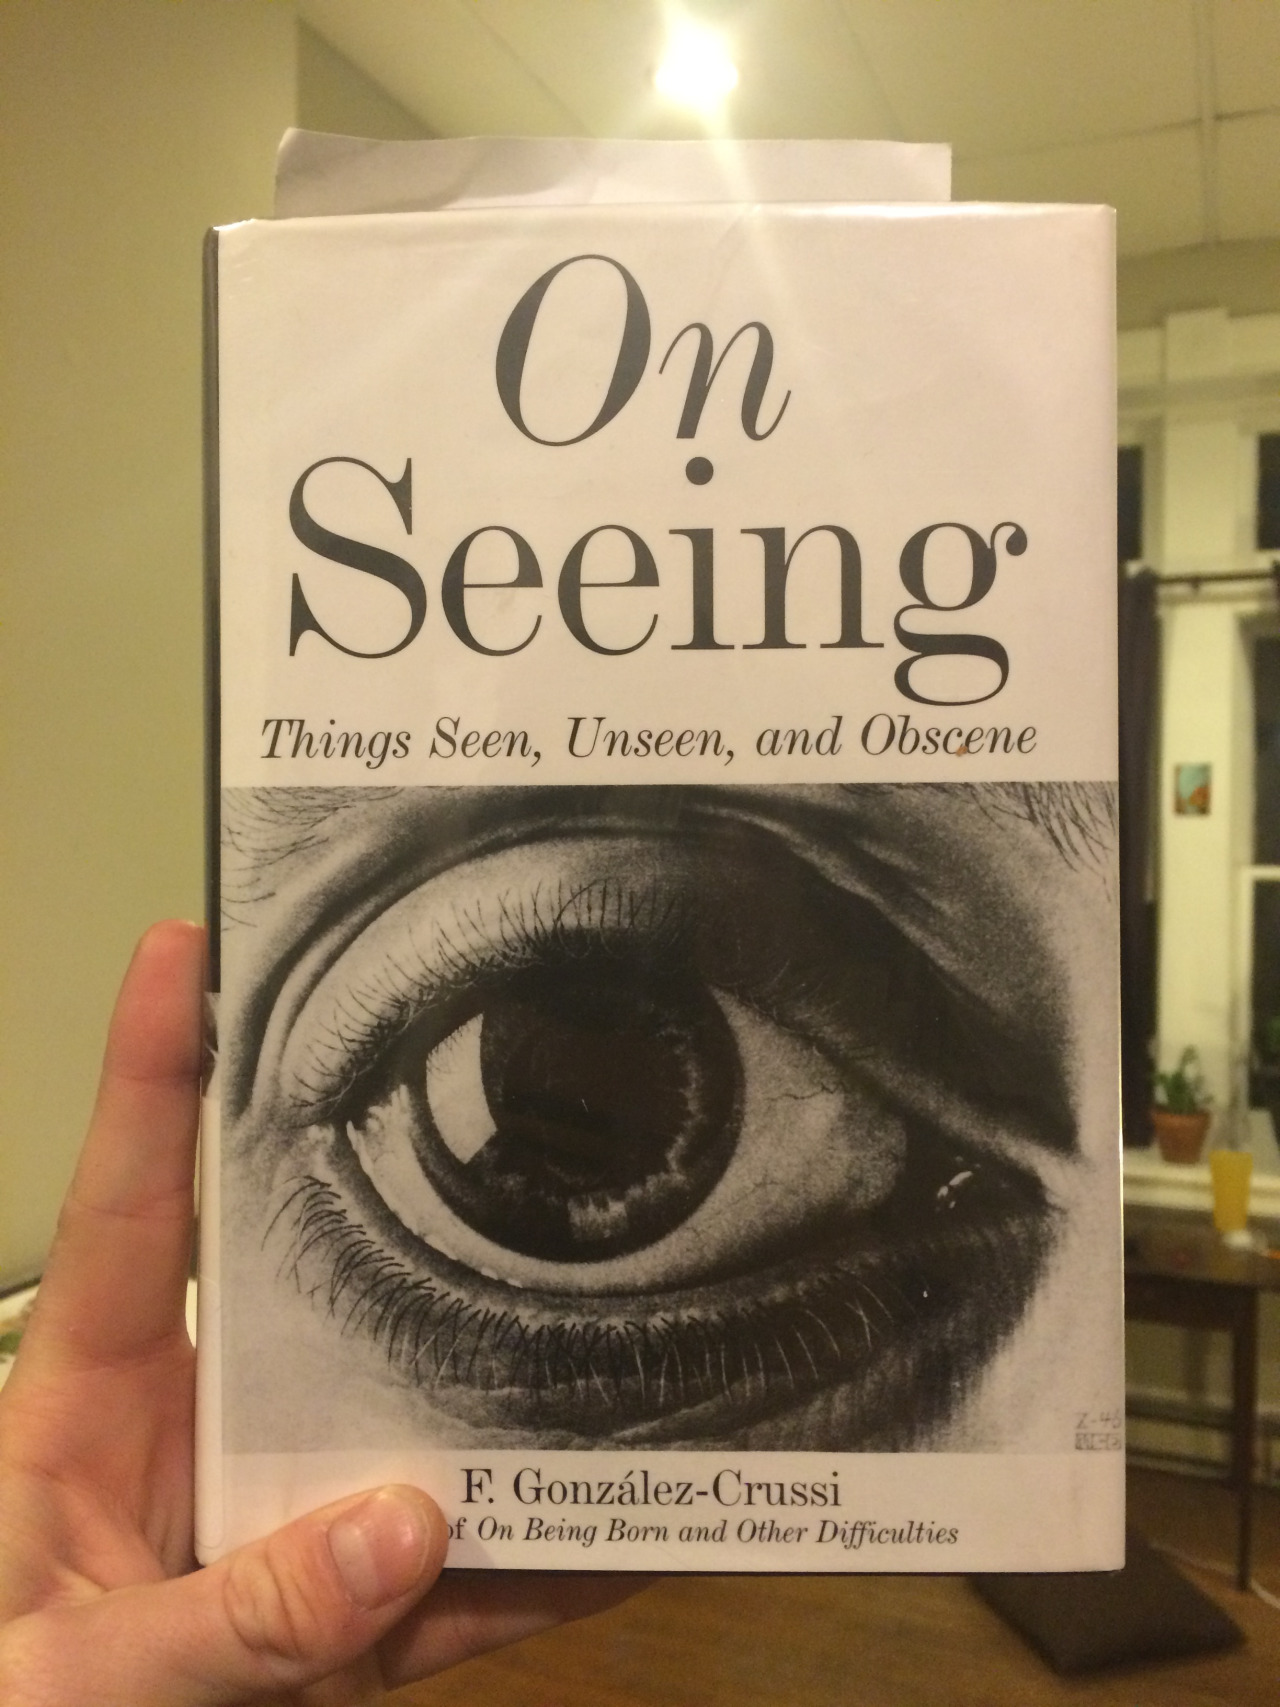 Fantastic book, really freaking fantastic essays on perception how we see and what we look at. Introduced me to the work of Cajal a neuro-biologist. There is also a line I the book that says there is nothing more powerful and transfixing than the gaze of your lover, really poetic.